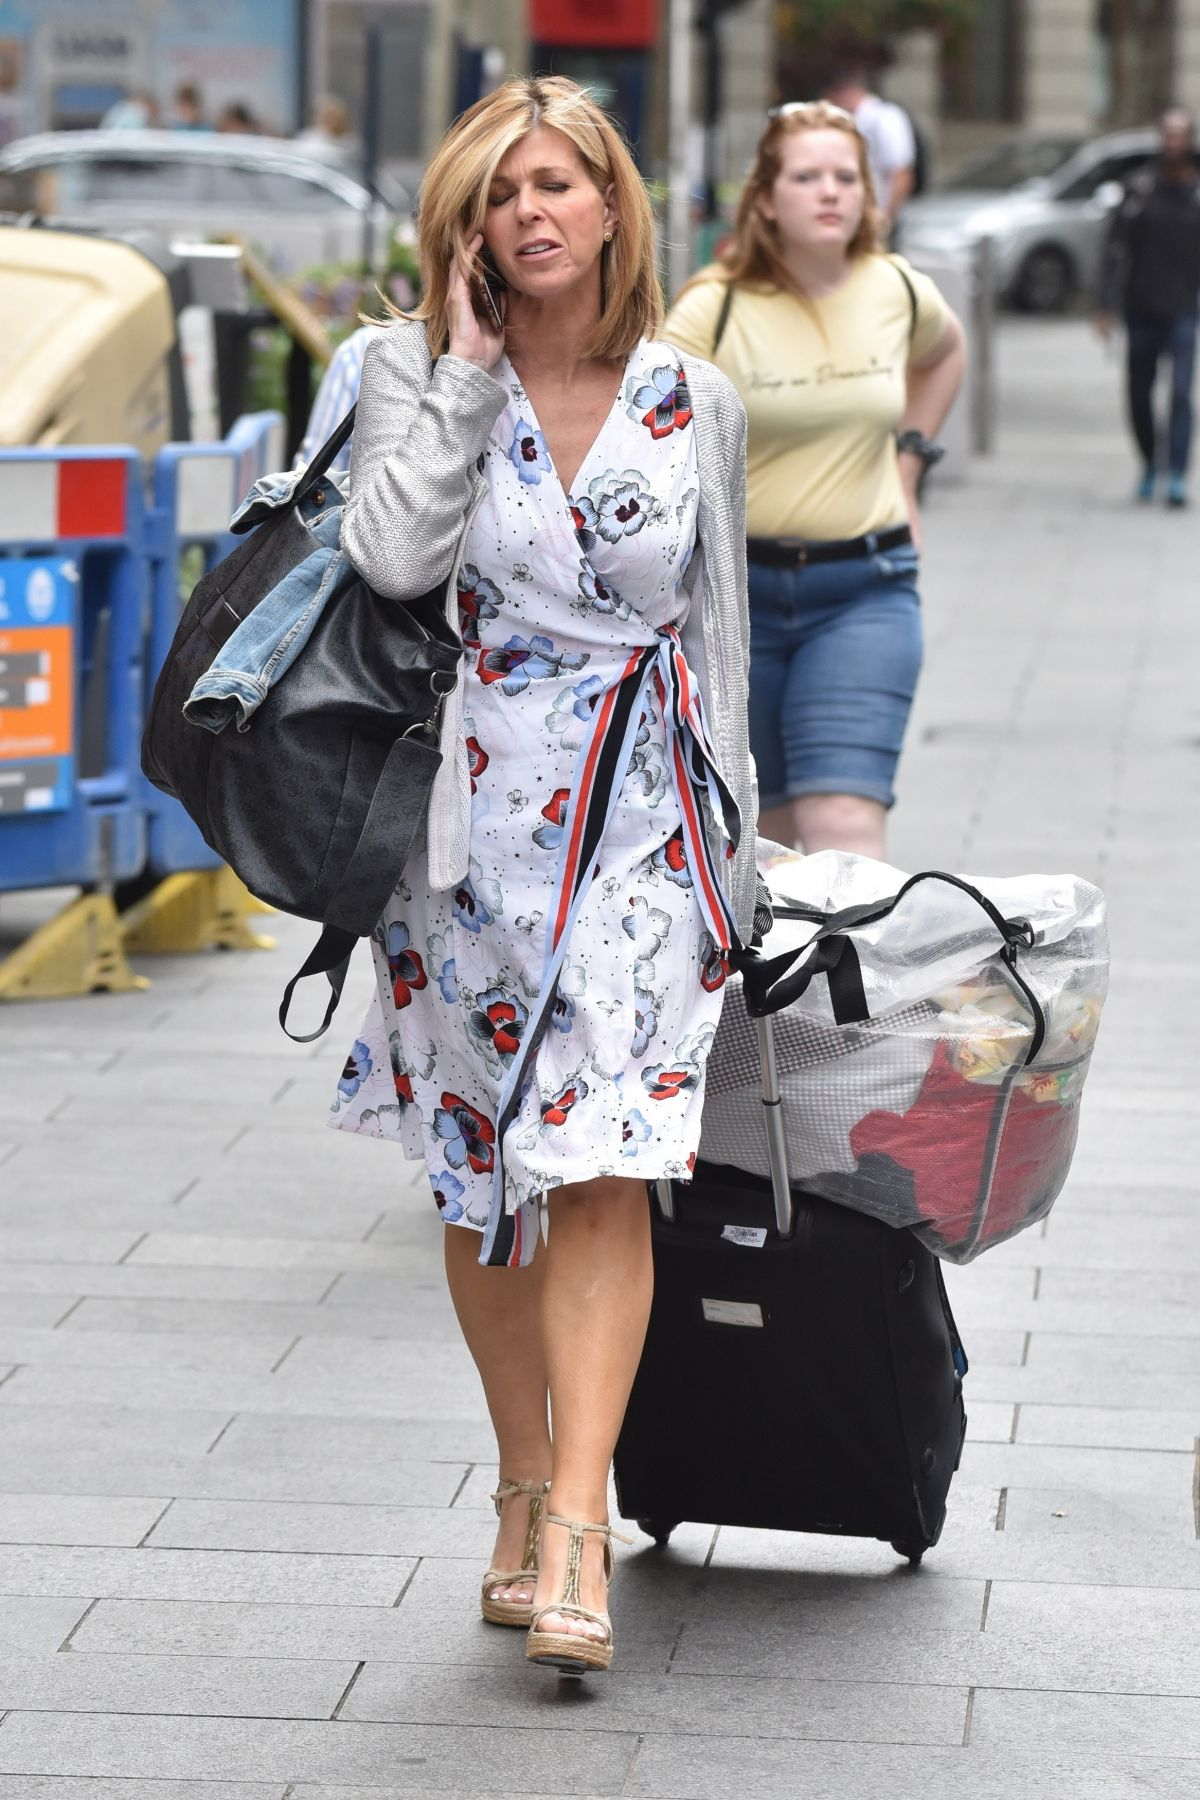 KATE GARRAWAY Arrives at Her Smooth Radio Show in London 07/22/2019